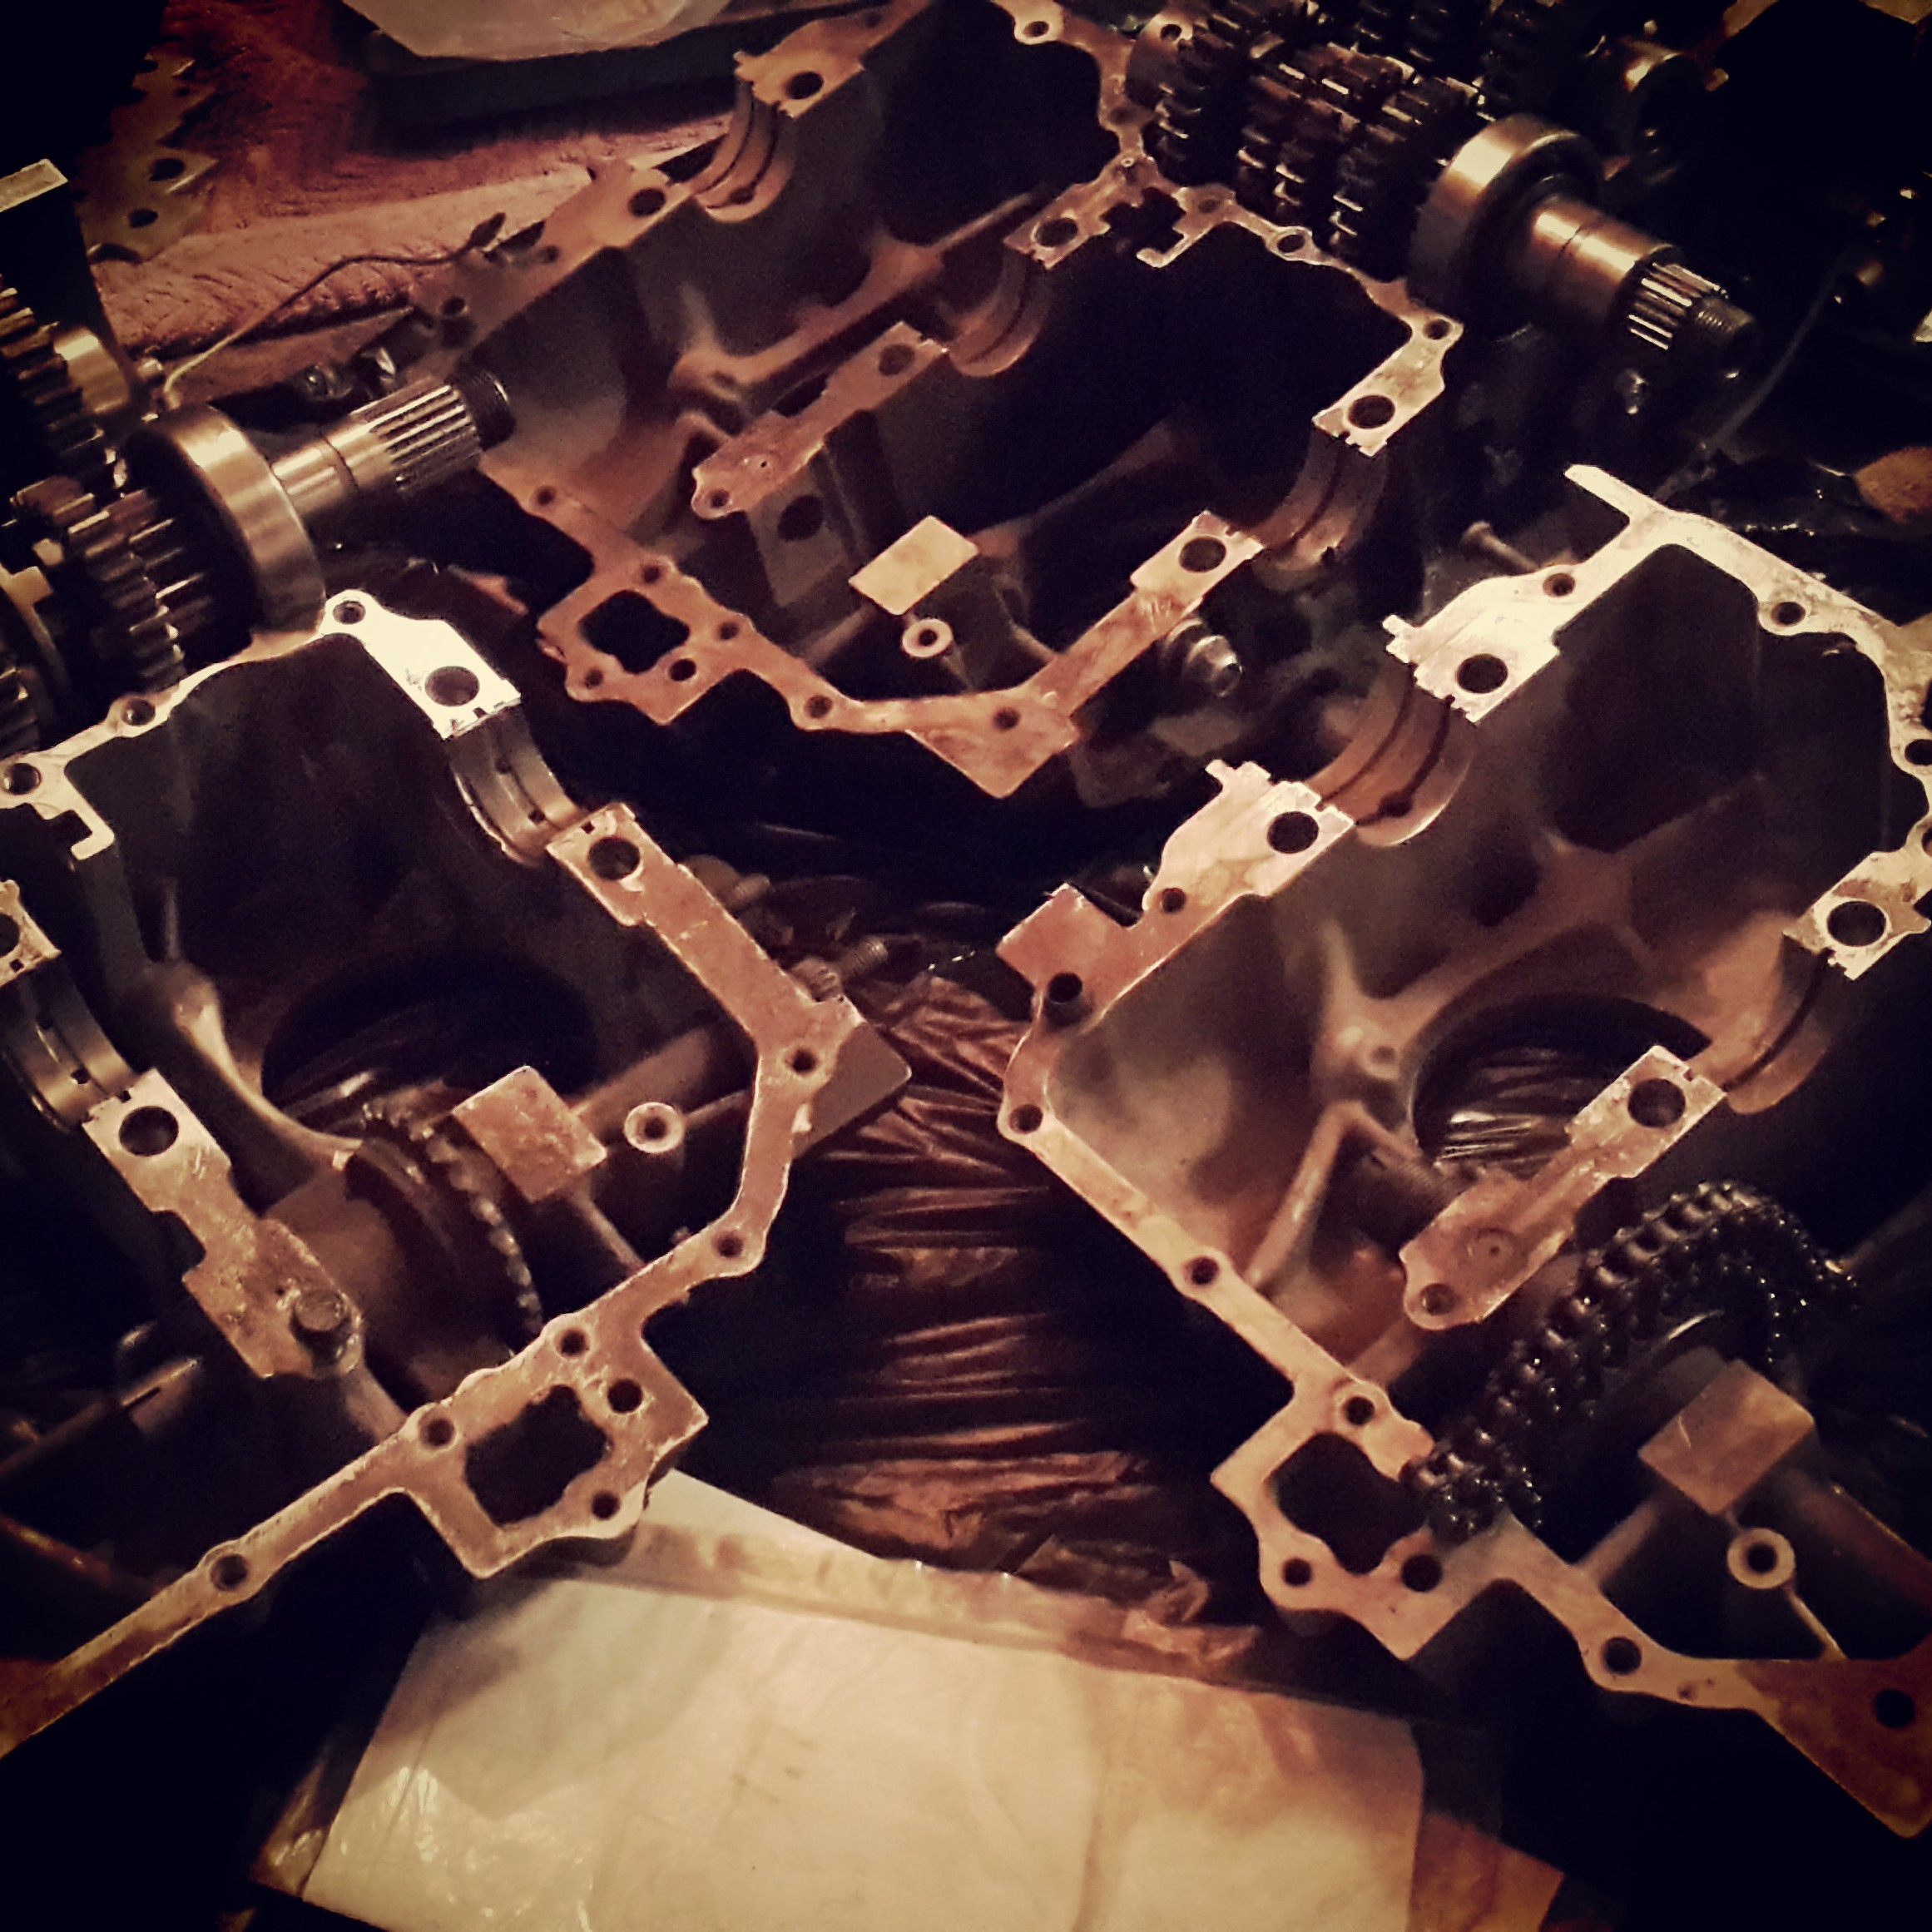 Pieces of CB400 engines, still dirty before cleaning or any serious building back in September 2013.